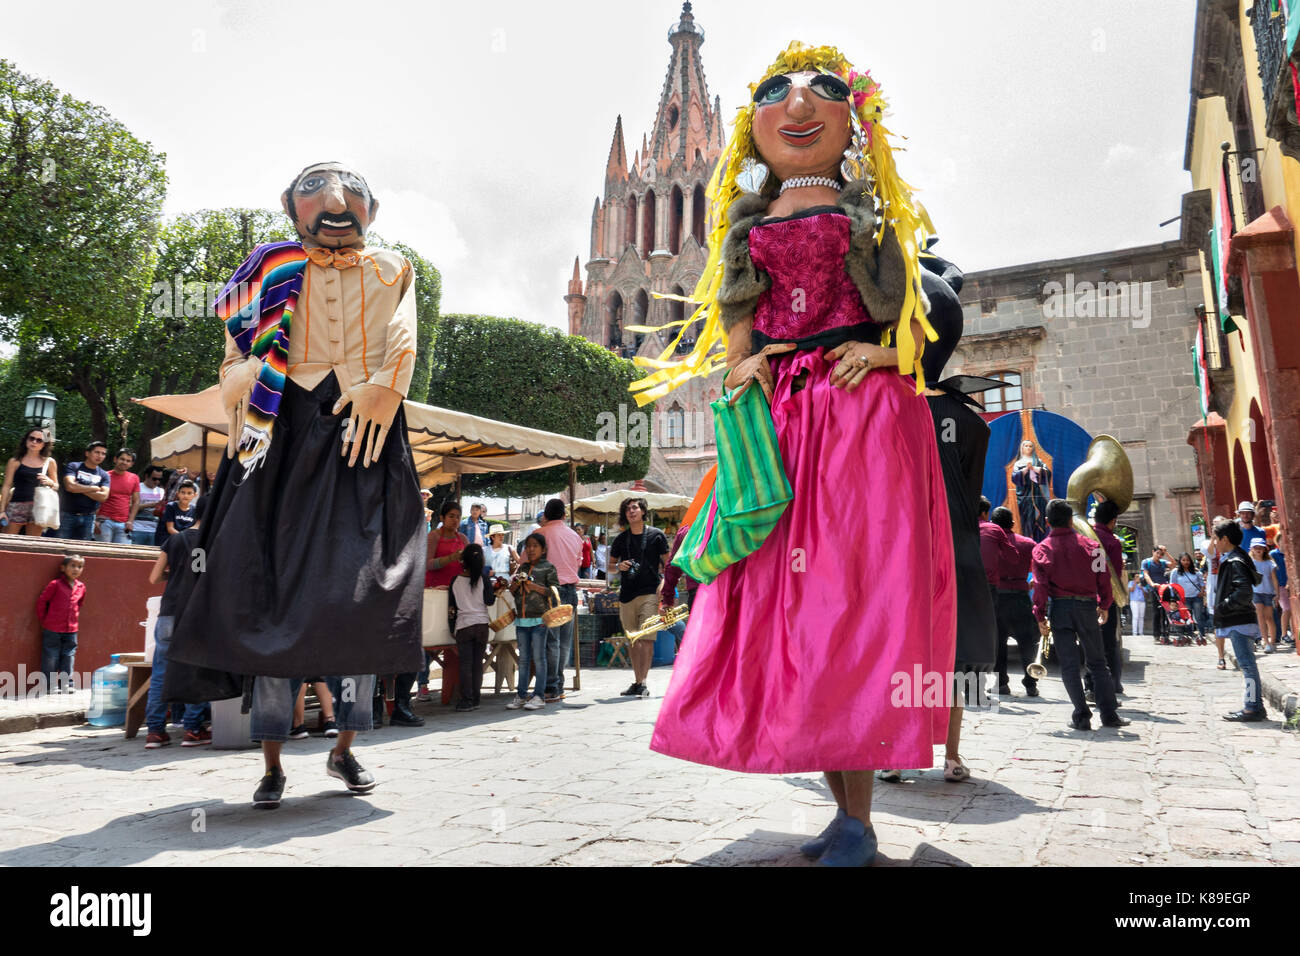 Giant papier mache puppets called mojigangas dance in front of the Parroquia de San Miguel Arcangel church during - Stock Image